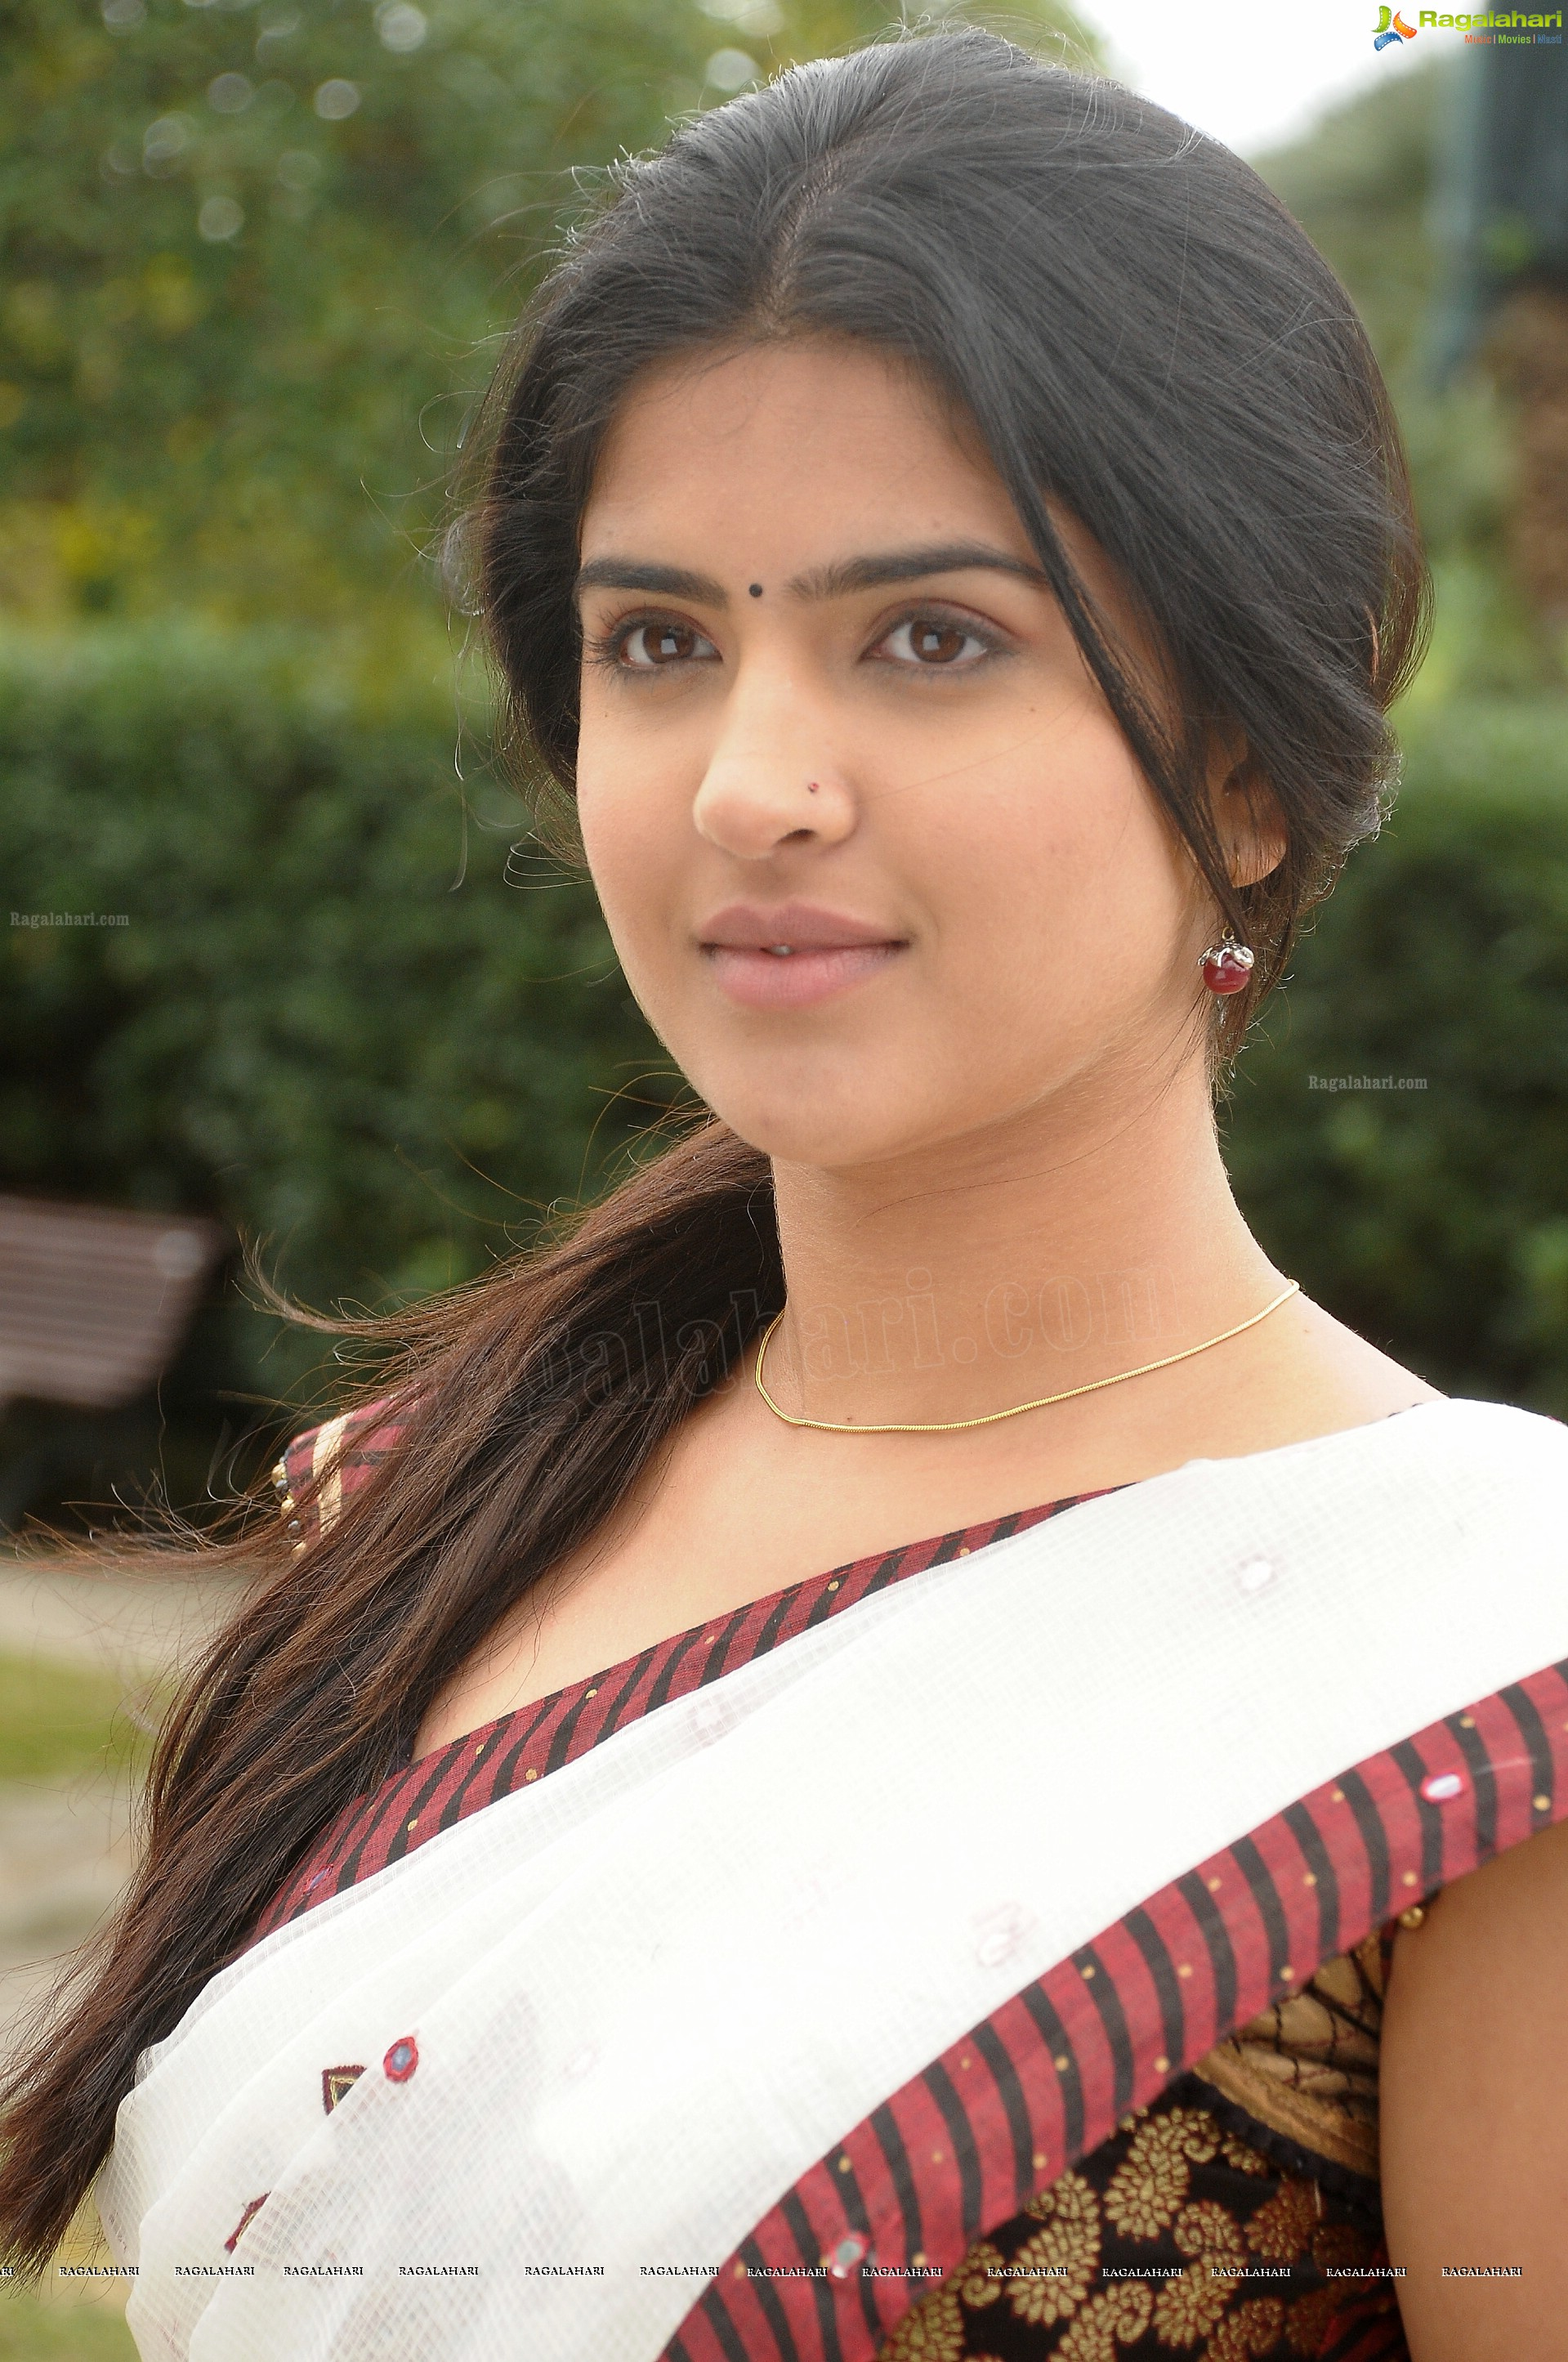 exclusive hd: deeksha seth hot photos in 'wanted'